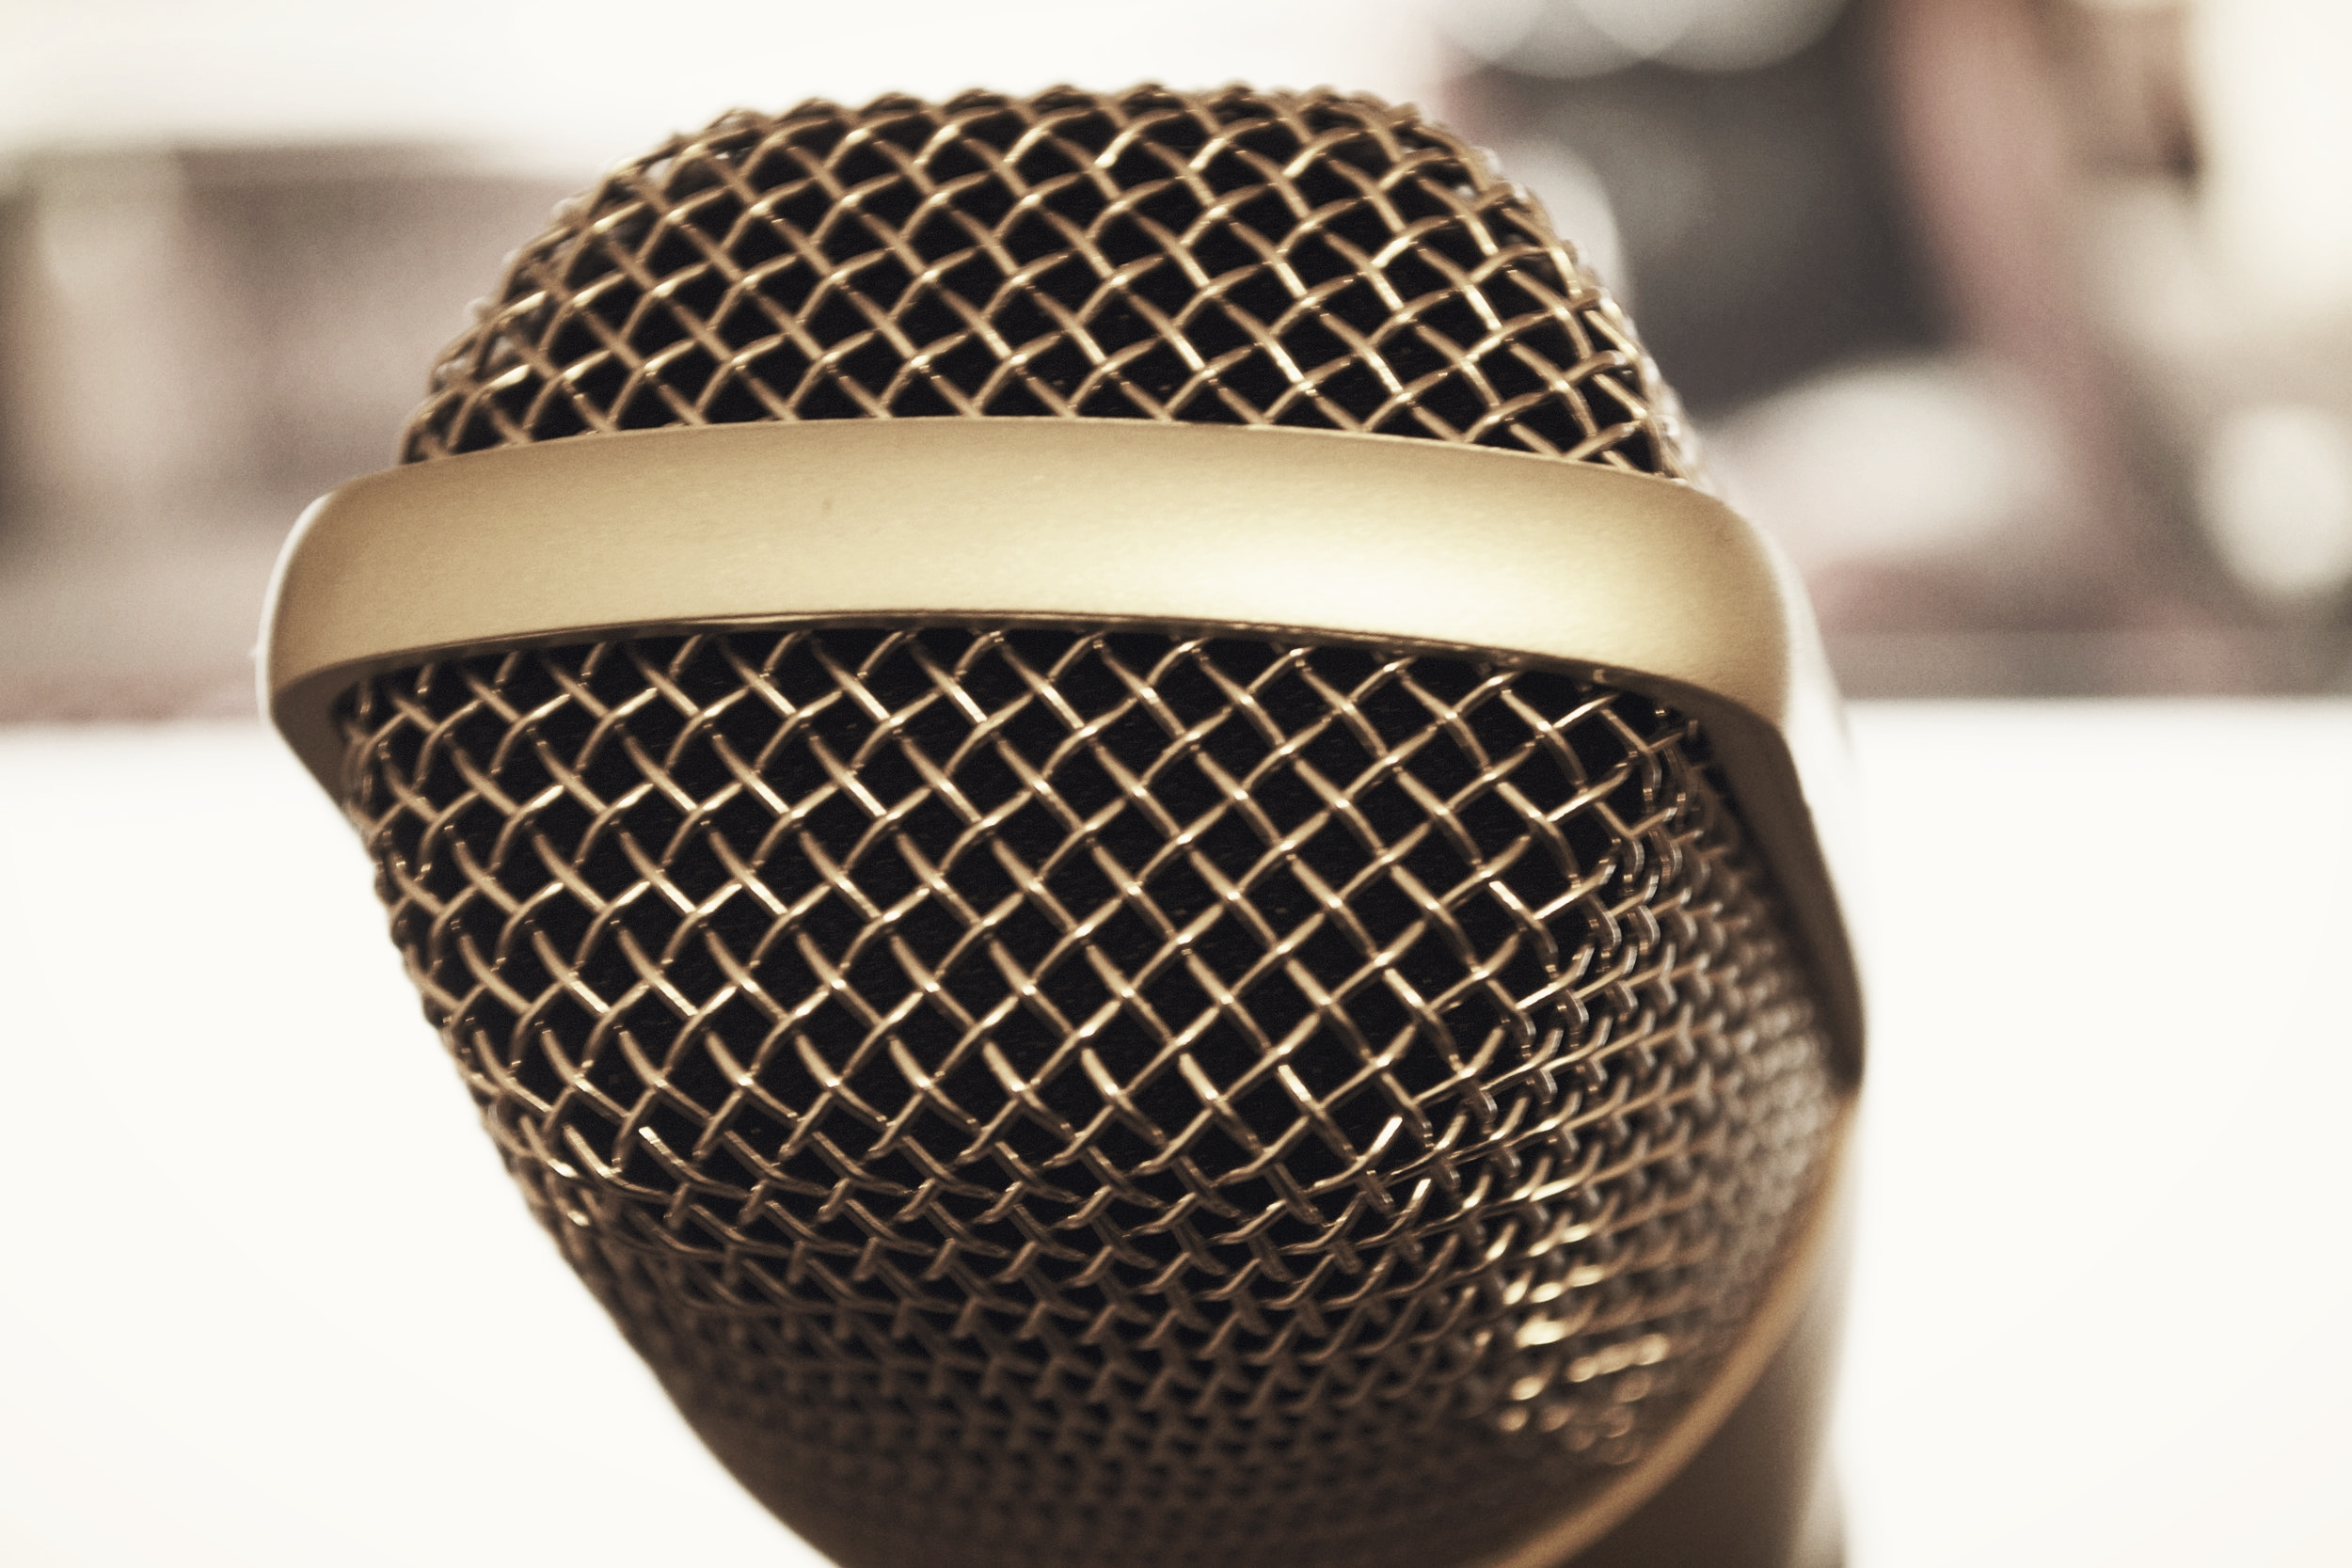 Voice-Over Talent Training Lessons Tutorials Getting Started